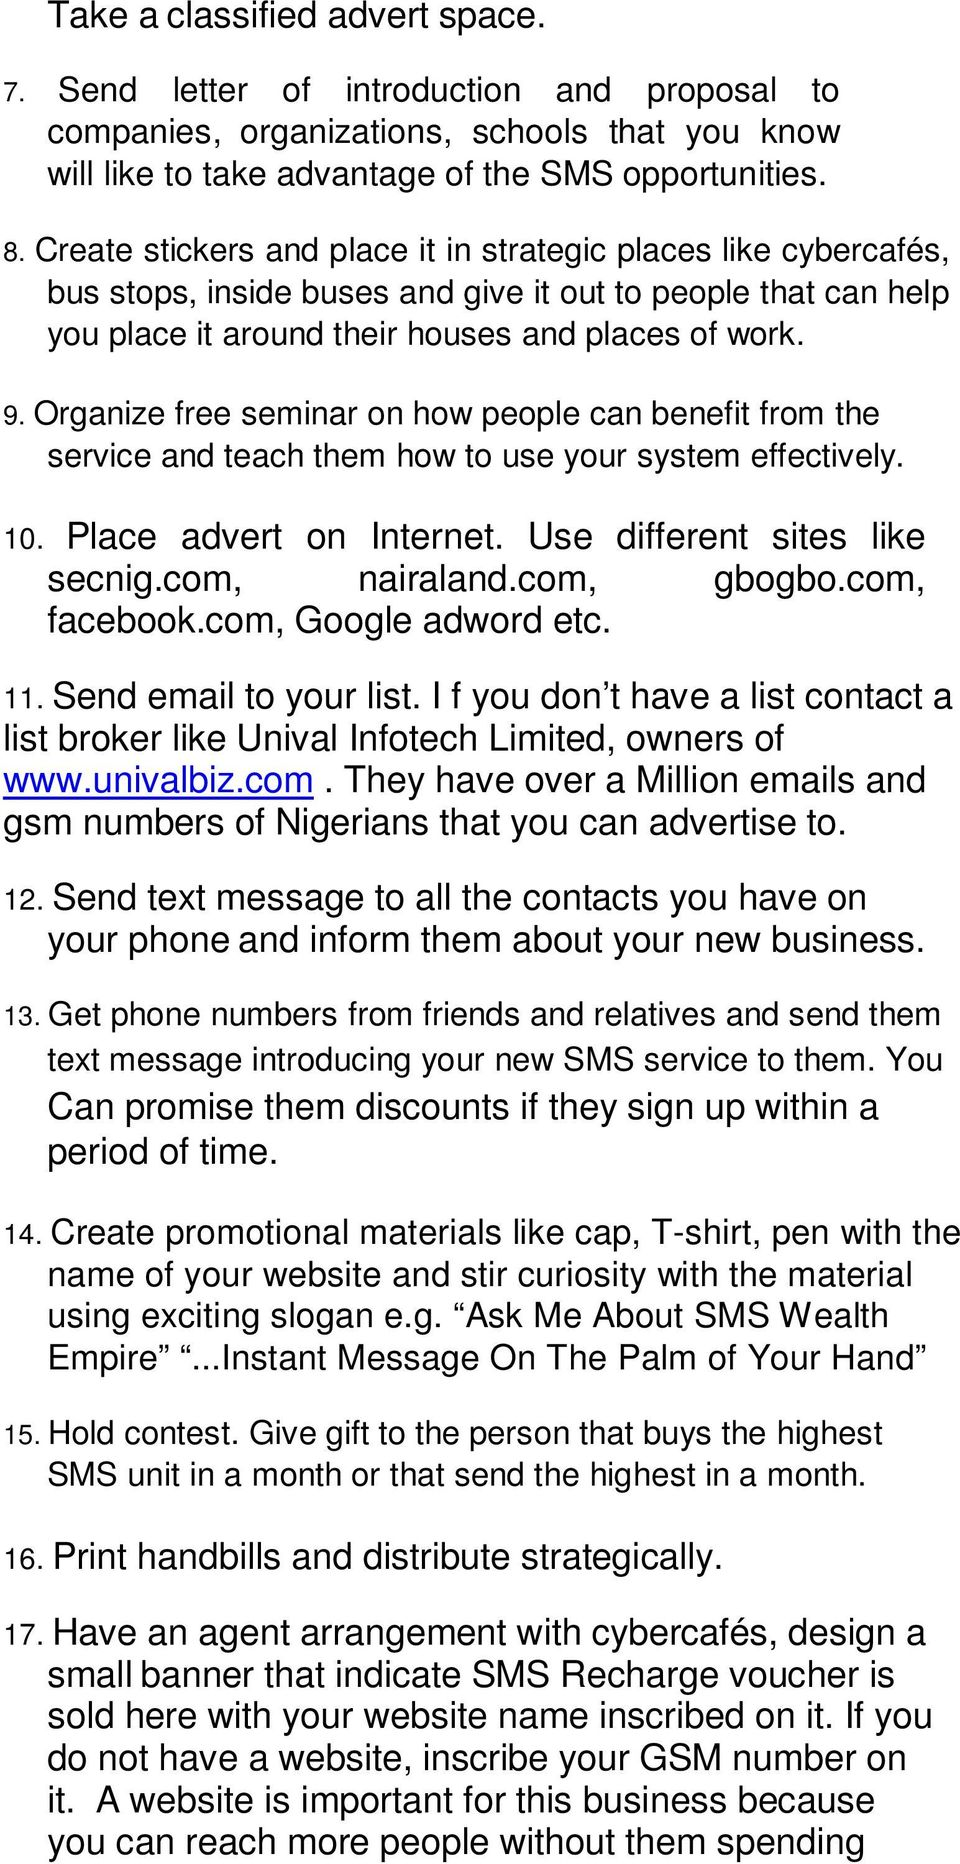 How To Make Money From Bulk SMS Business - PDF